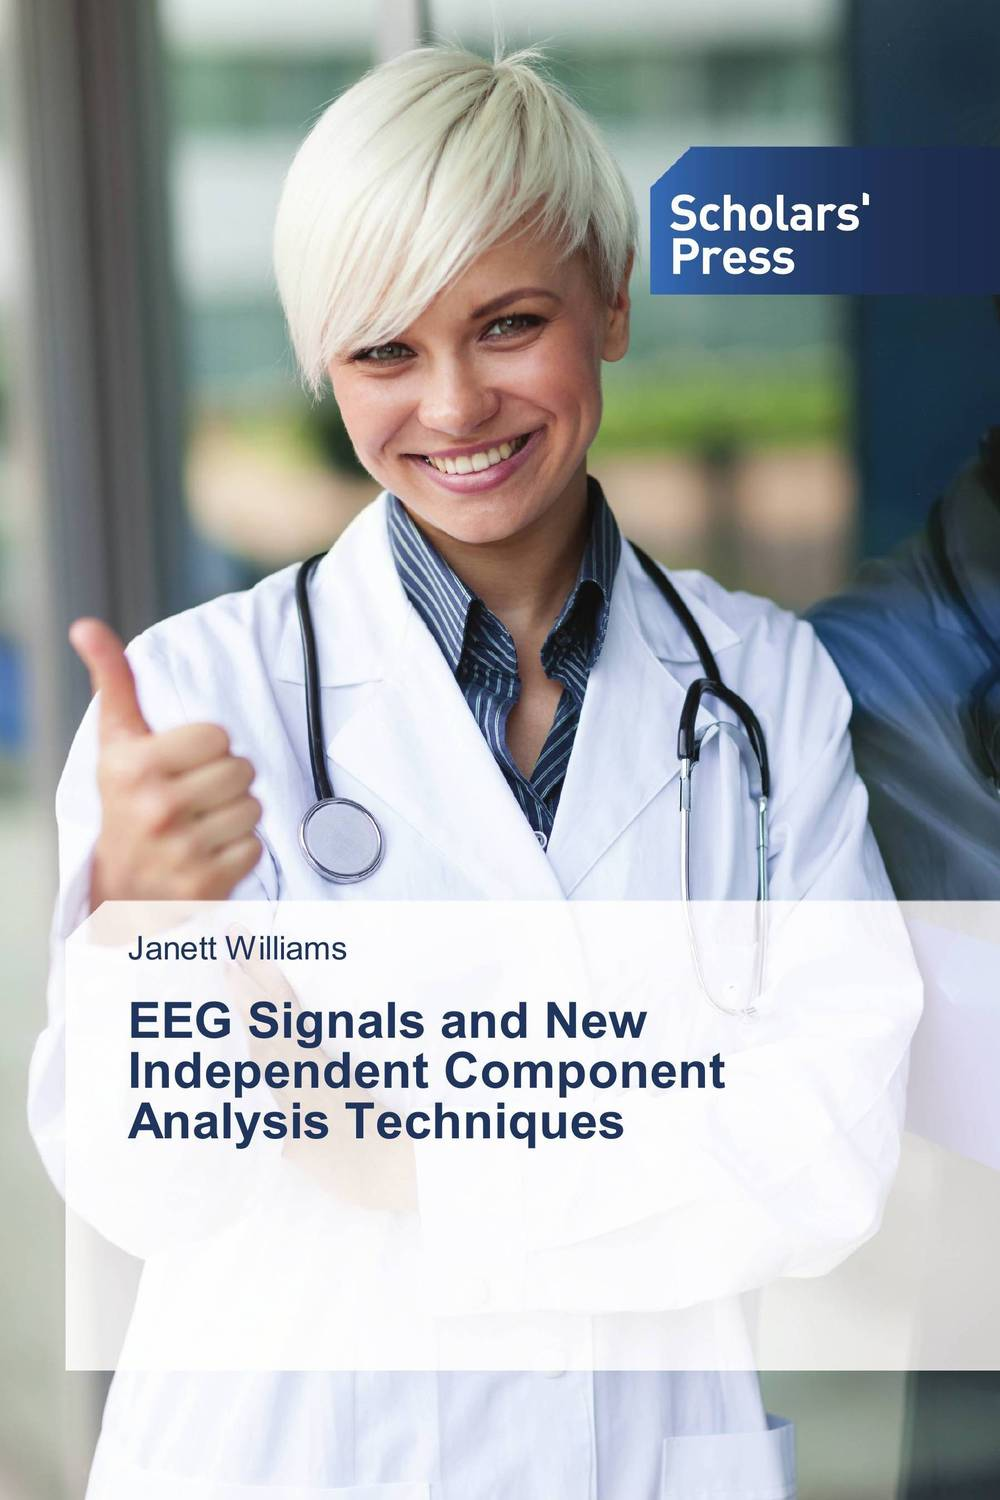 EEG Signals and New Independent Component Analysis Techniques lotus кулон lotus 39p 40wz